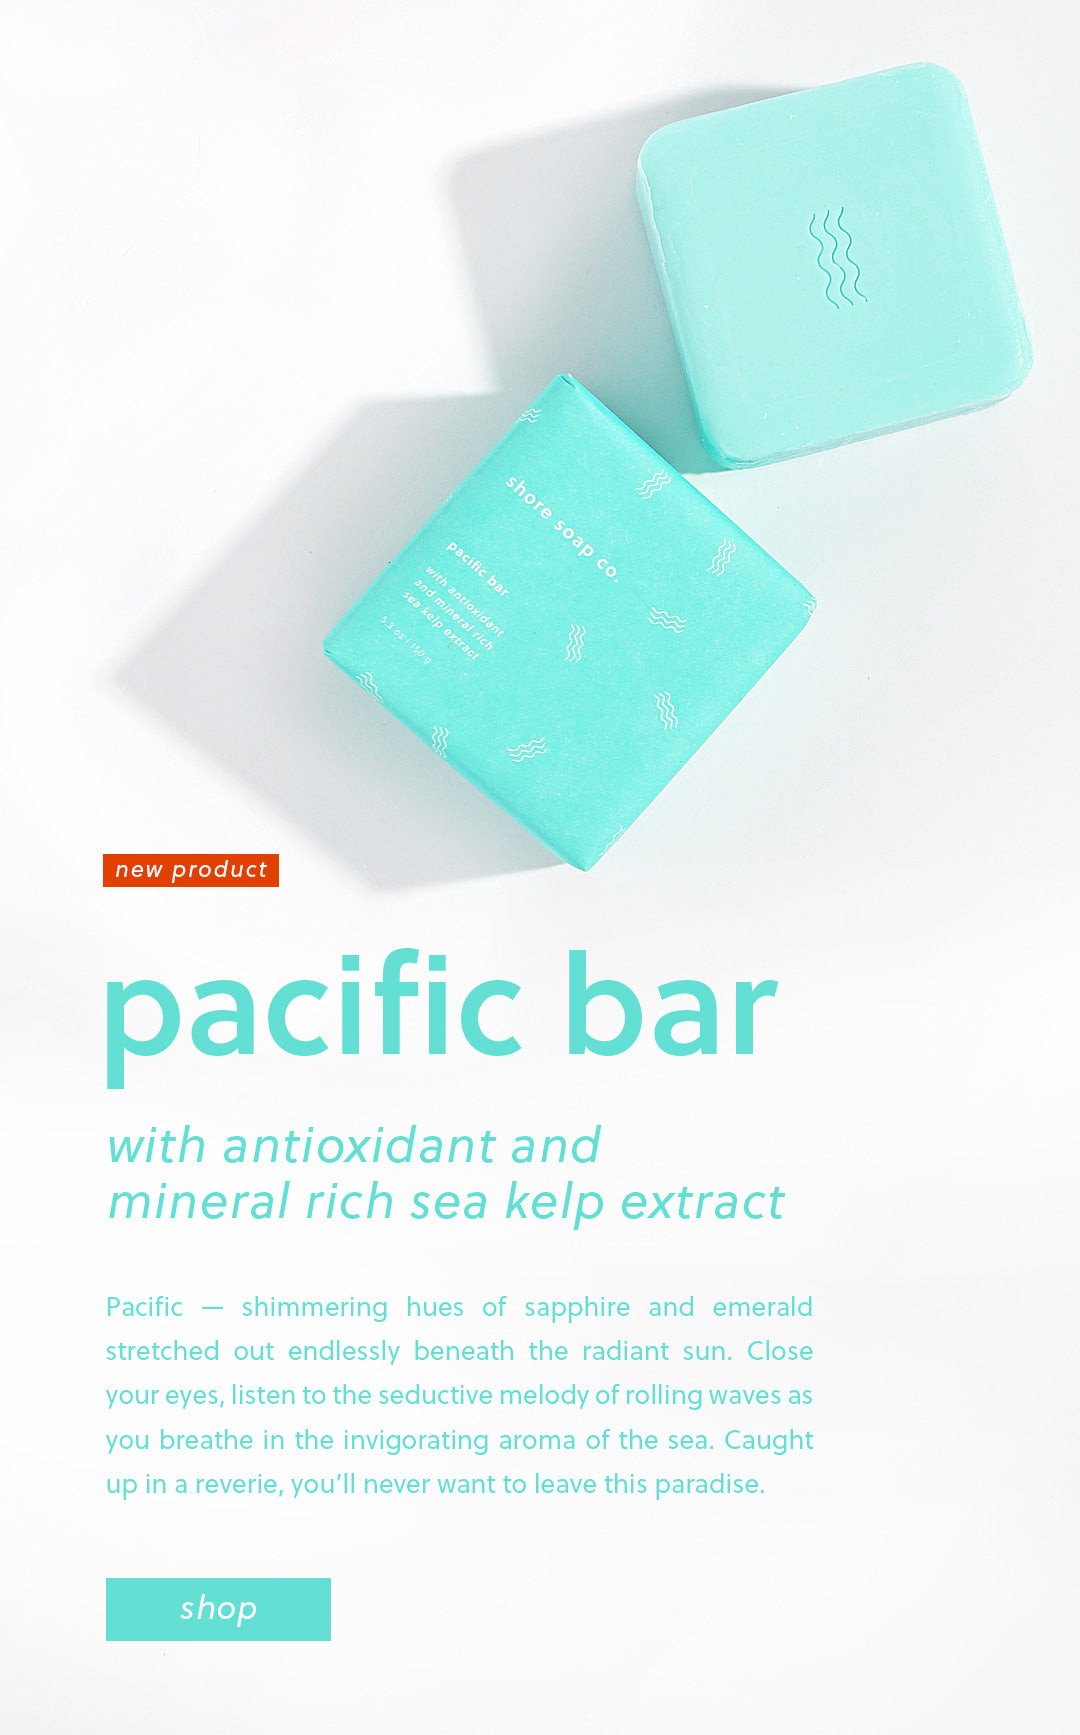 Ocean Influence - Atlanic & Pacific Bars